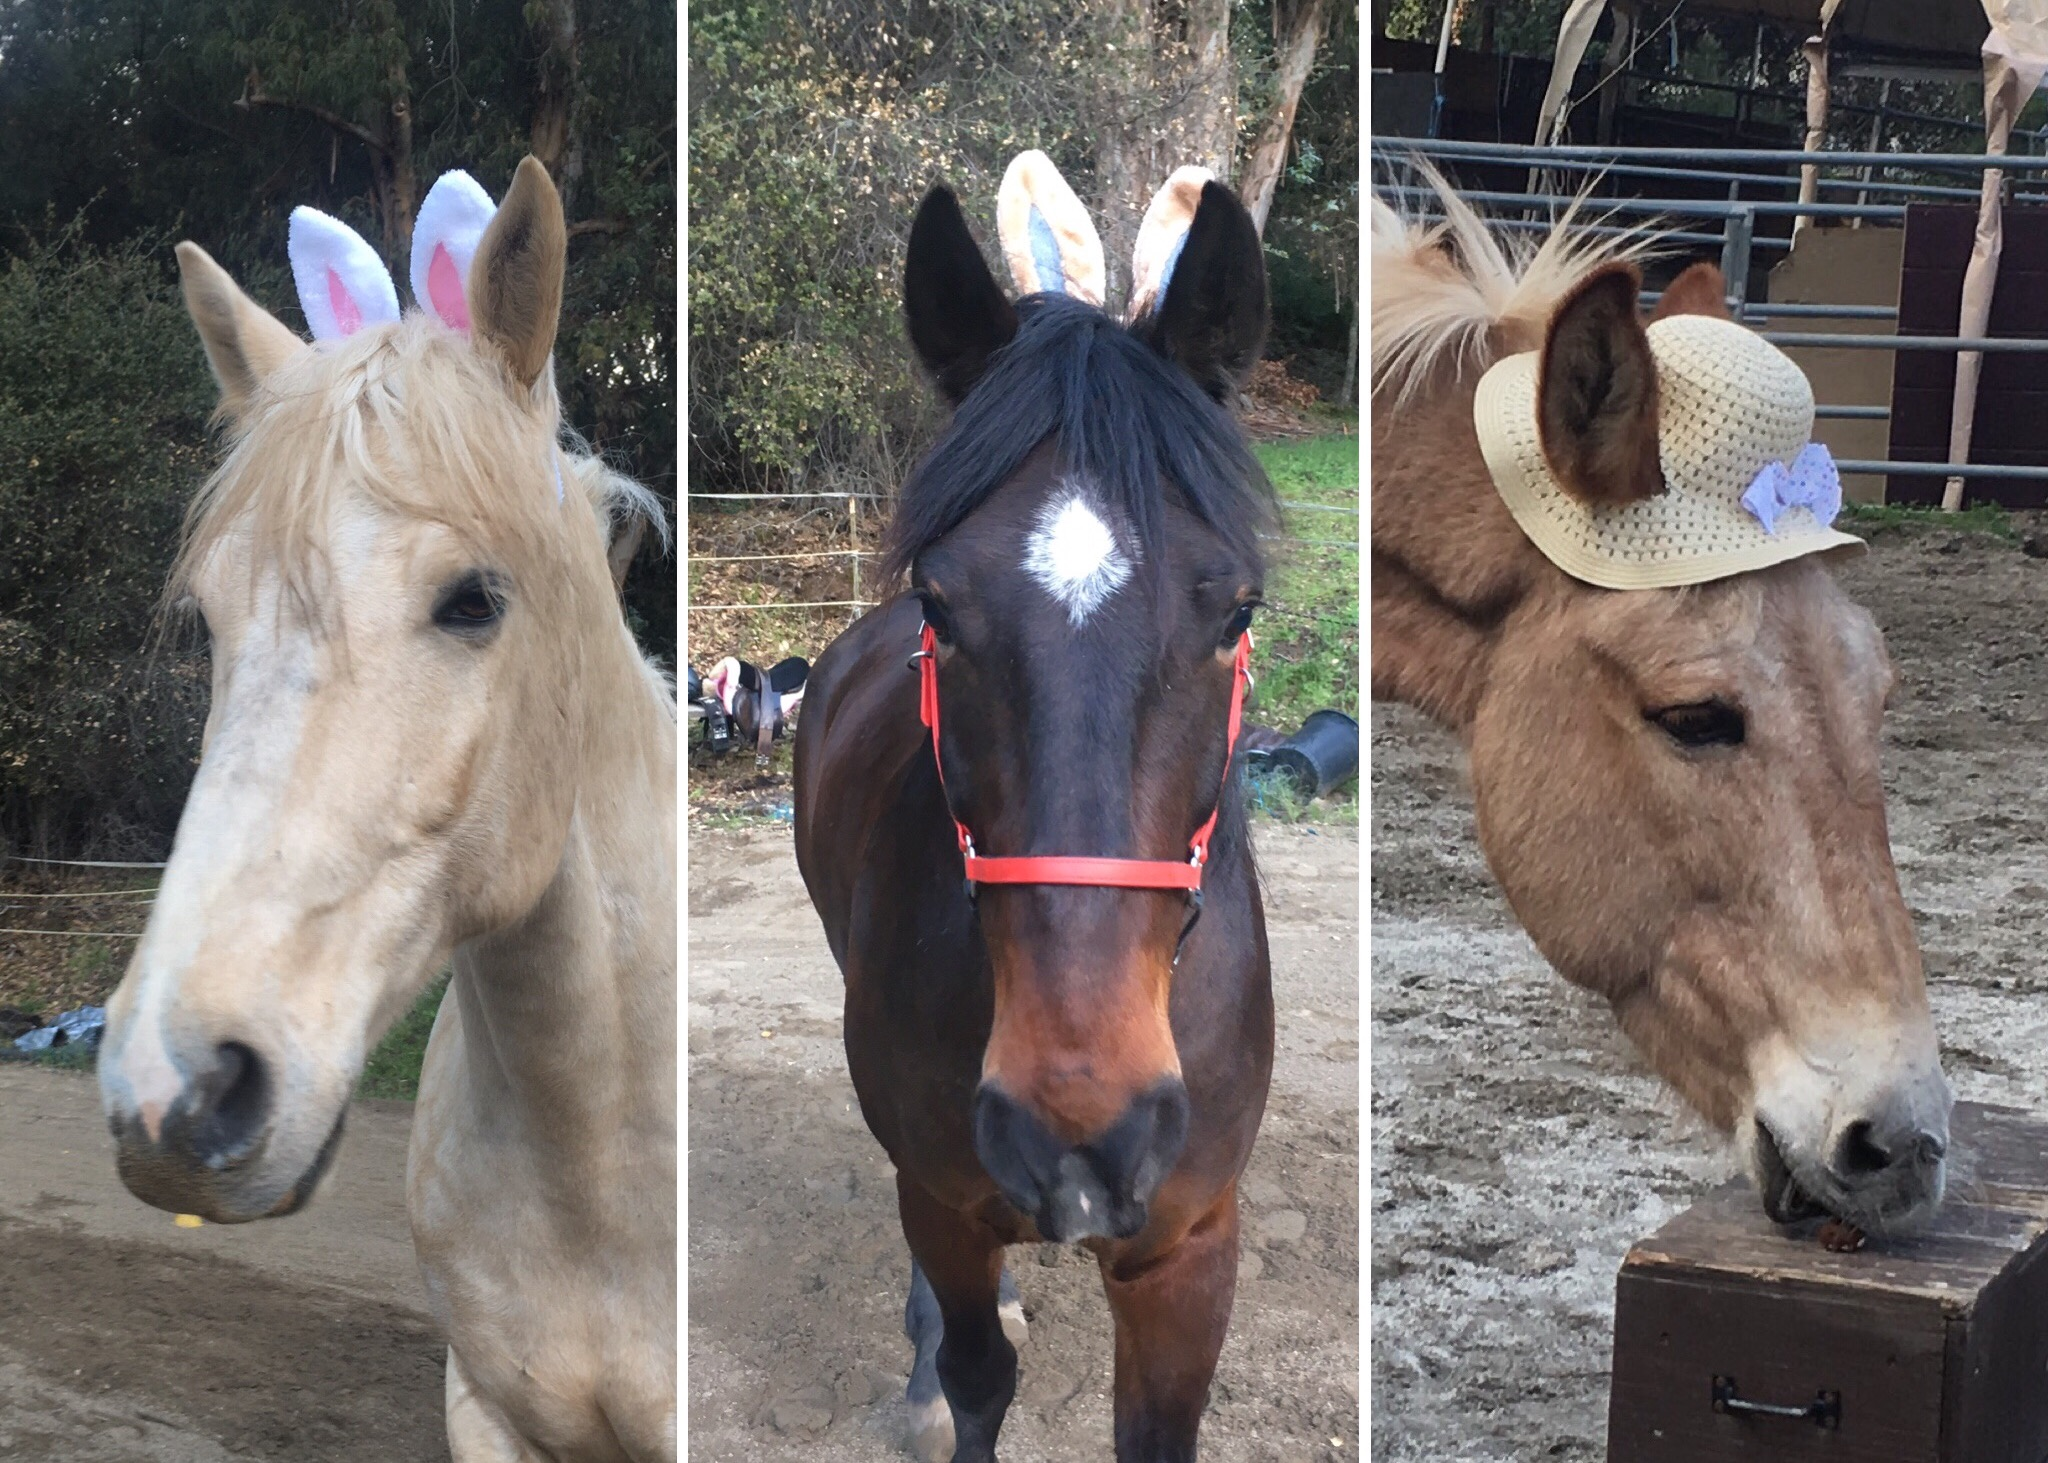 Do it yourself diy horse ownership easter egg hunt for horses solutioingenieria Gallery